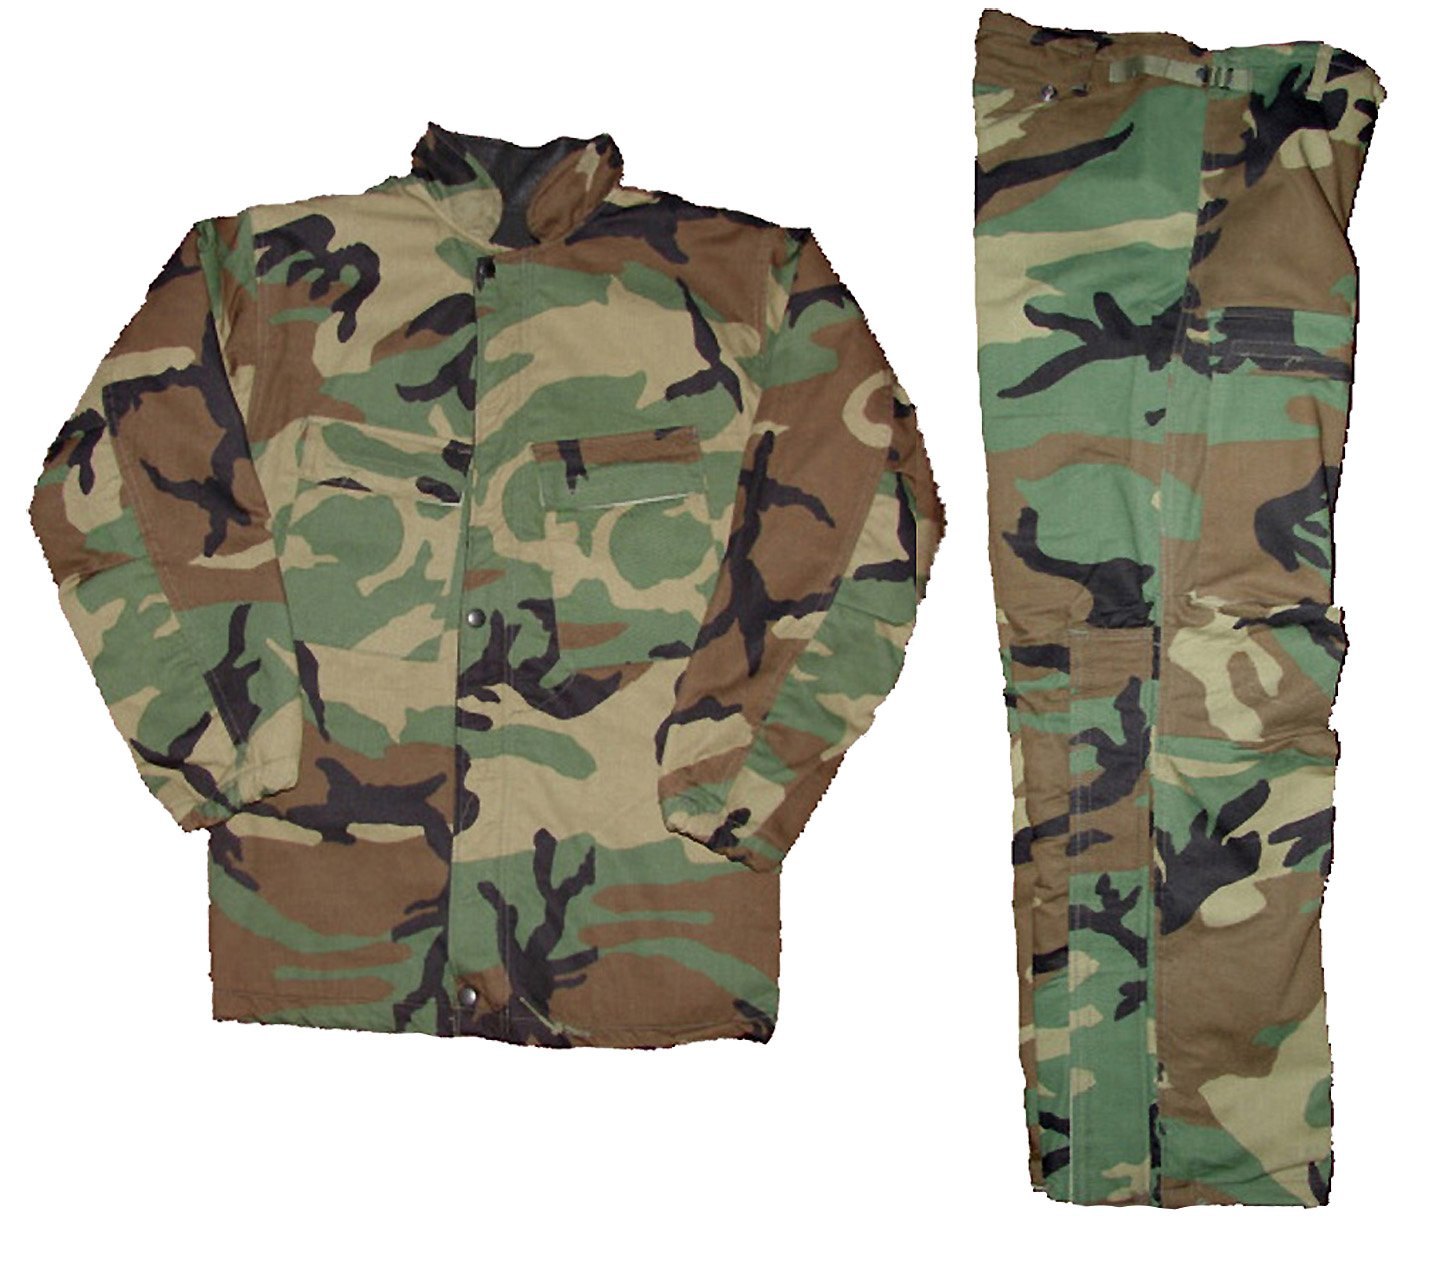 Military Outdoor Clothing Woodland Chemical Suit, Medium by Military Outdoor Clothing (Image #1)